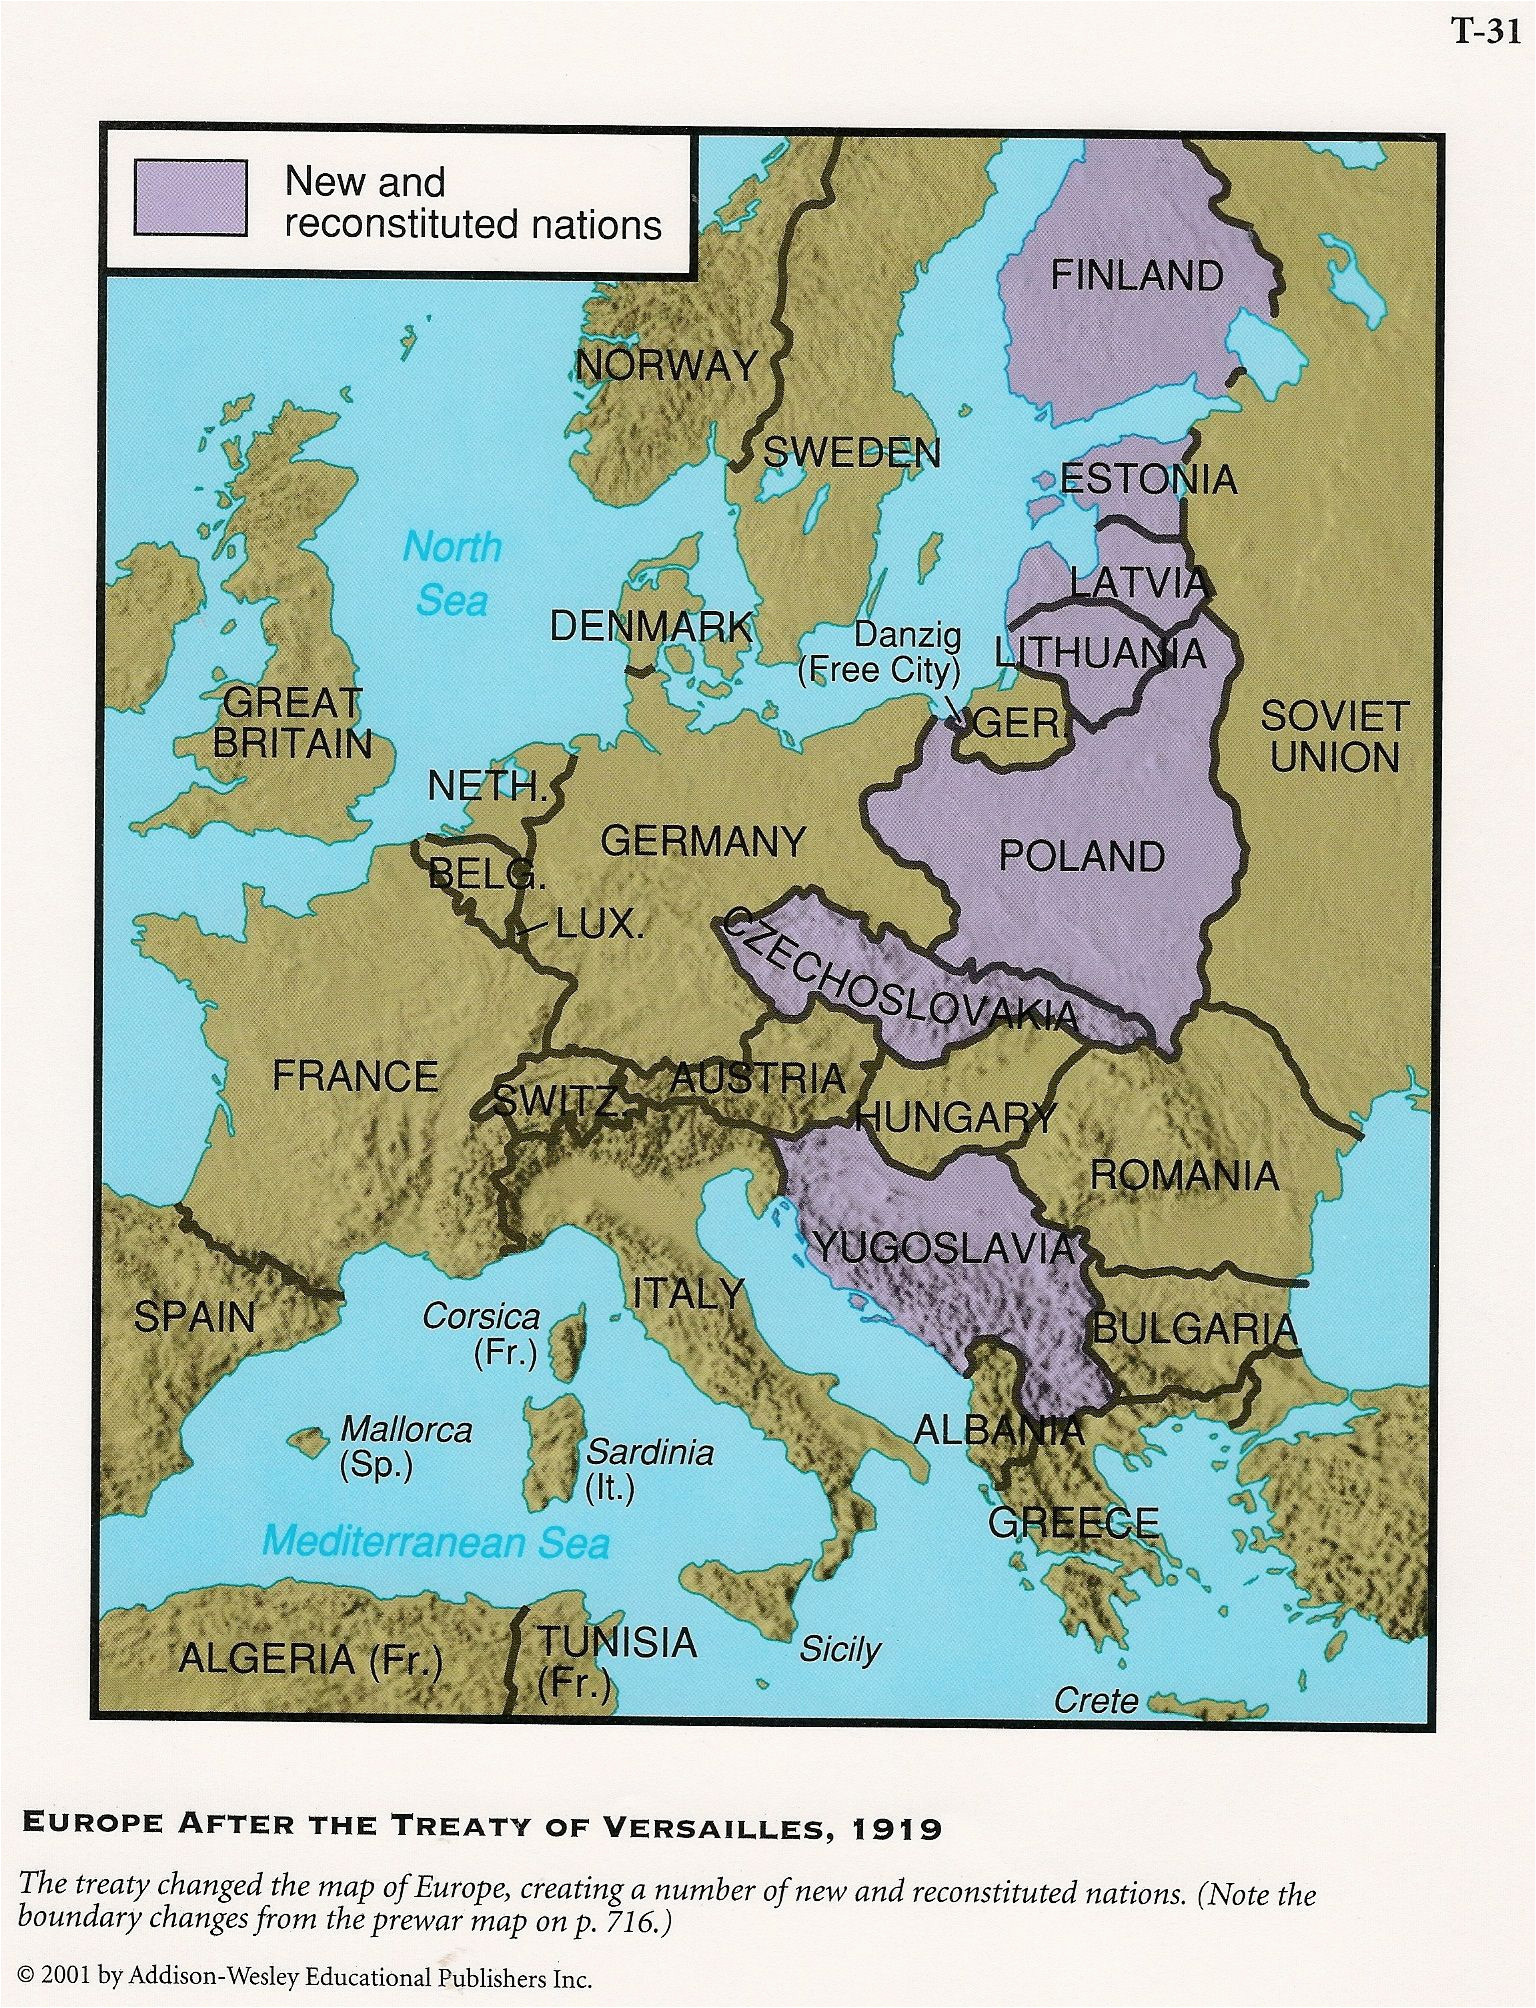 this is a picture of a map of europe after the treaty of